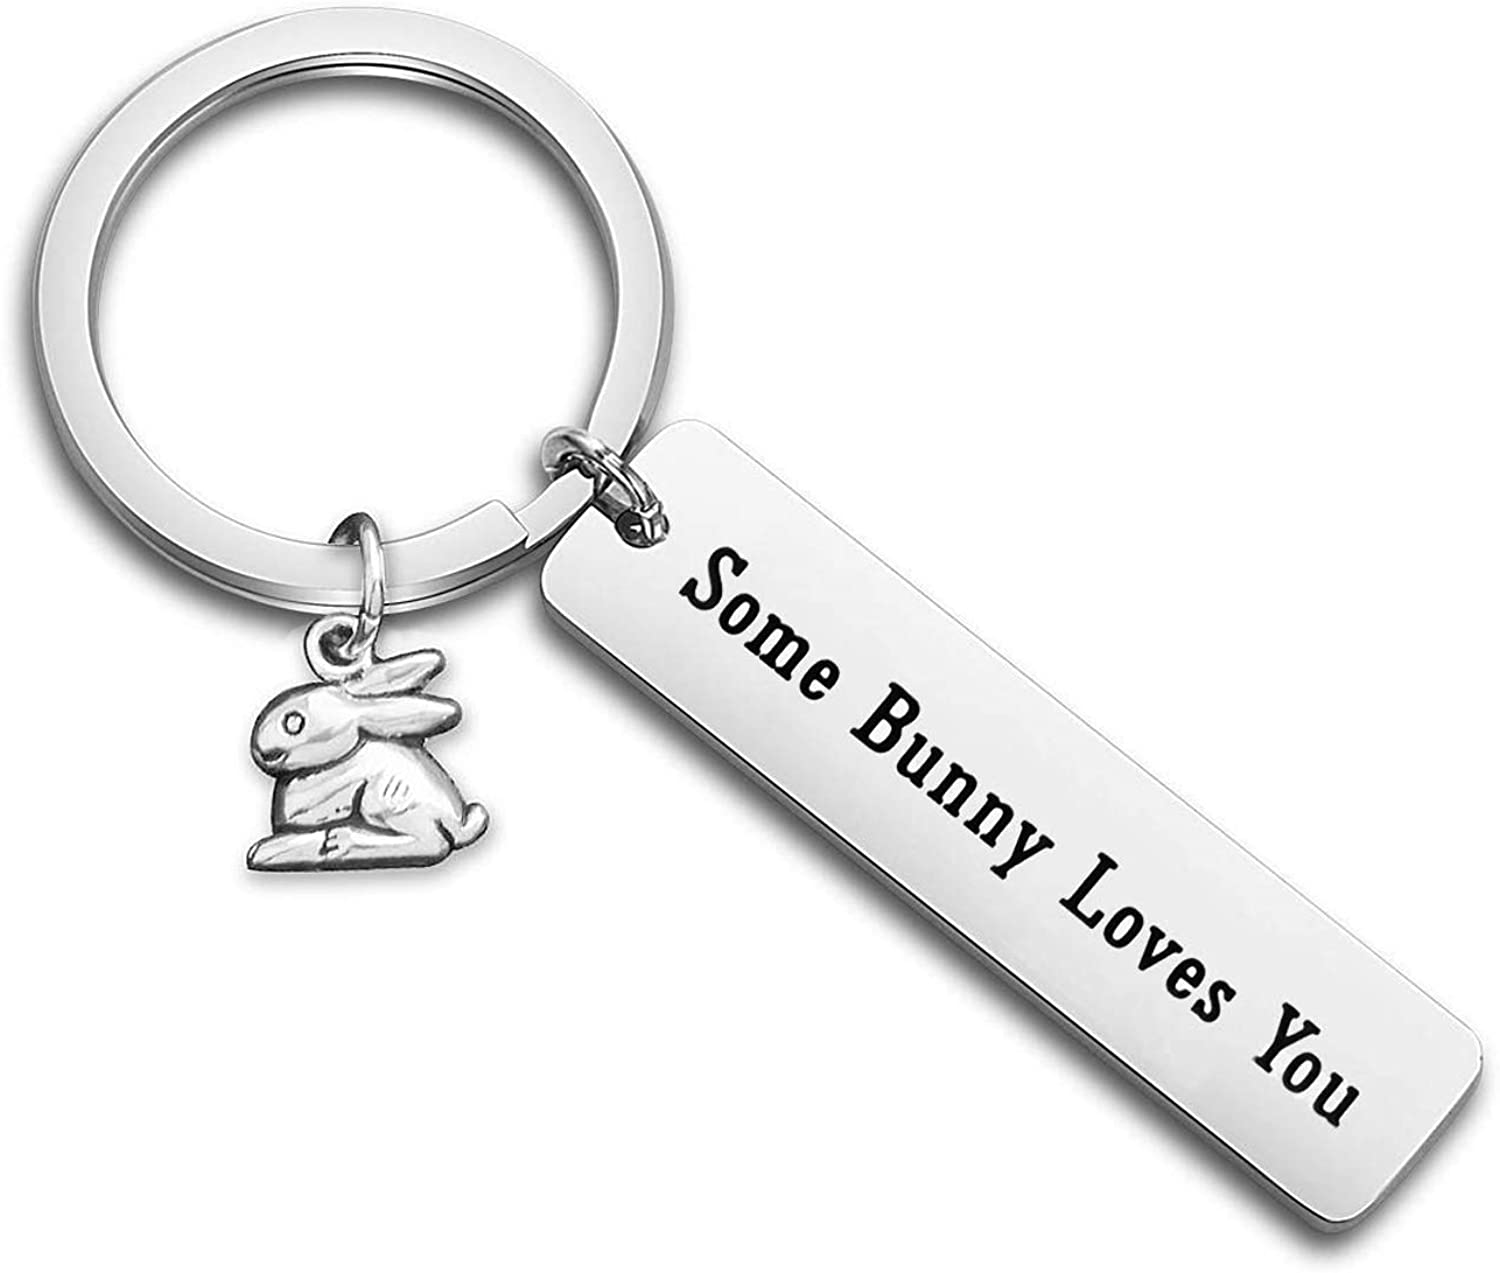 Gzrlyf Bunny Keychain Some Bunny Loves You Rabbit Gifts for Bunny Lovers